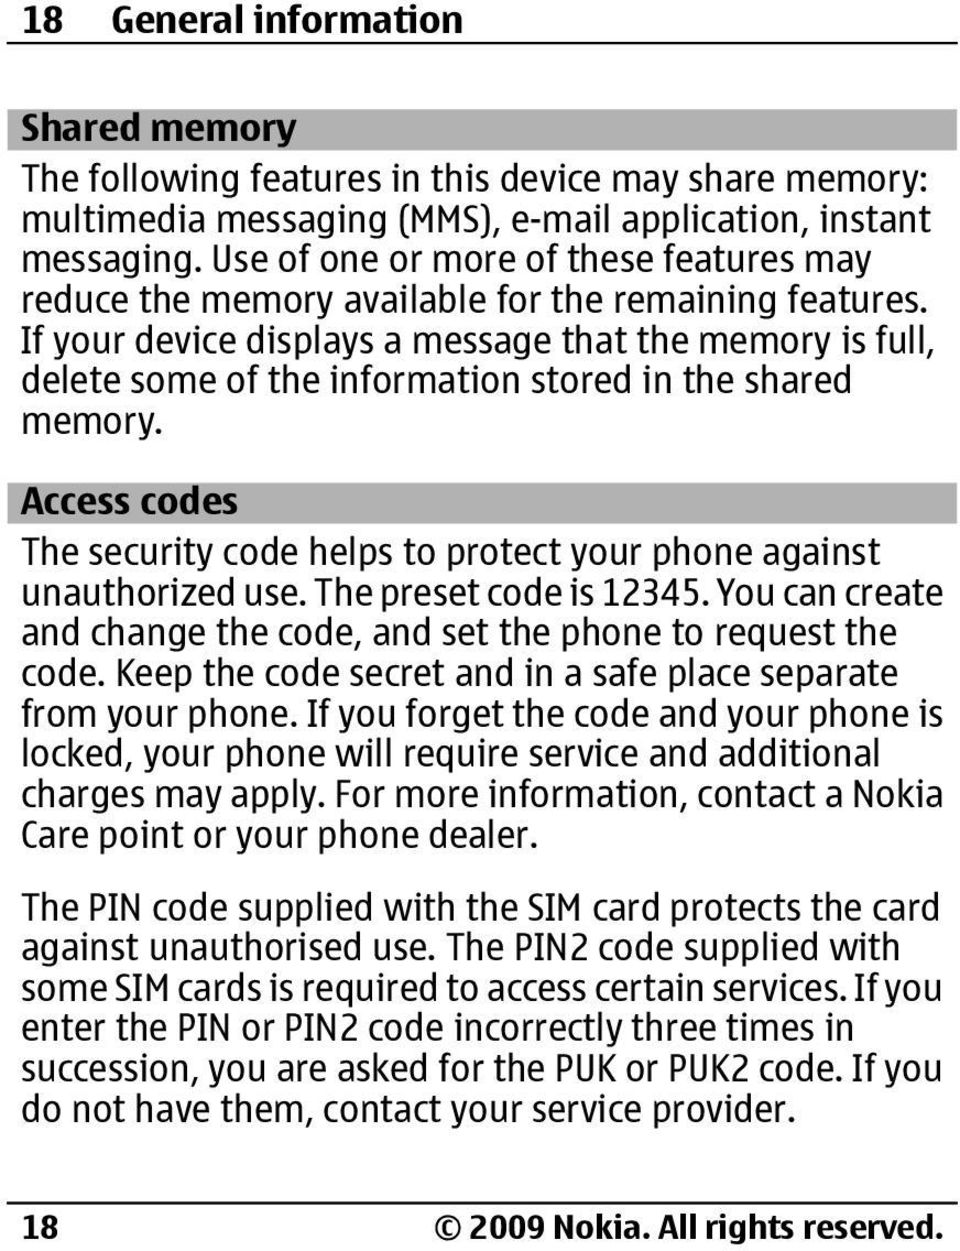 If your device displays a message that the memory is full, delete some of the information stored in the shared memory.